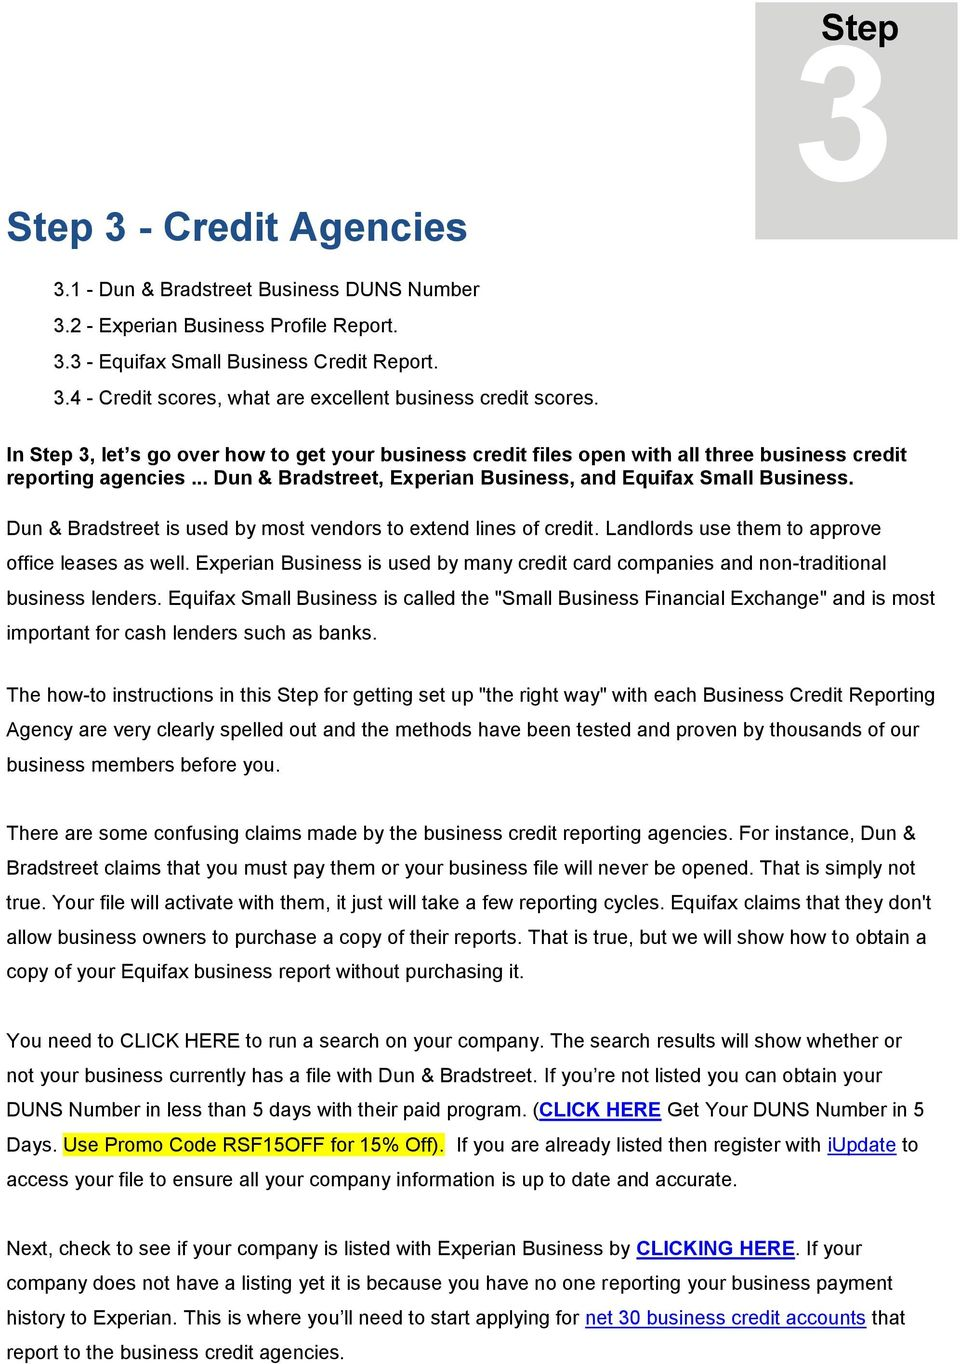 Dun & Bradstreet is used by most vendors to extend lines of credit. Landlords use them to approve office leases as well.